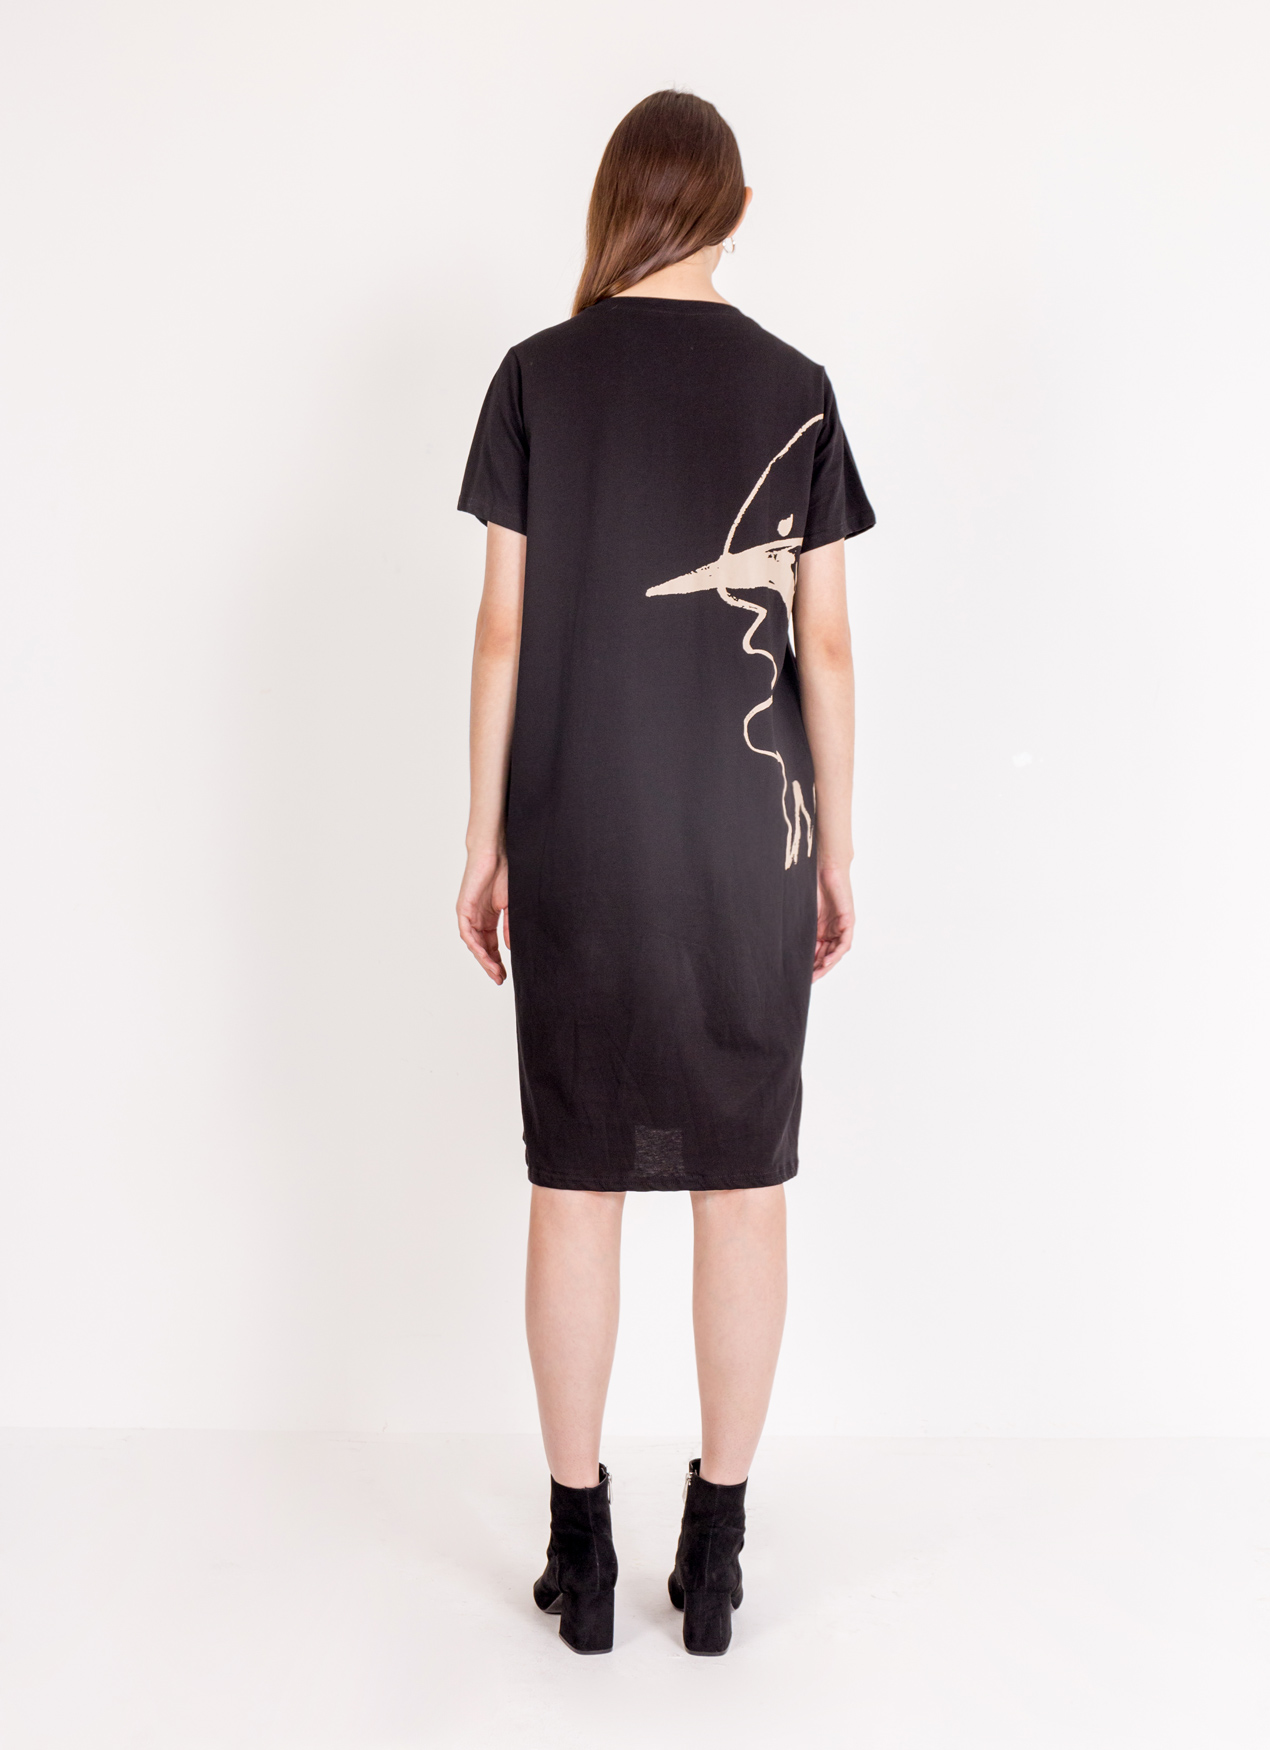 BOWN Lenora Dress - Black